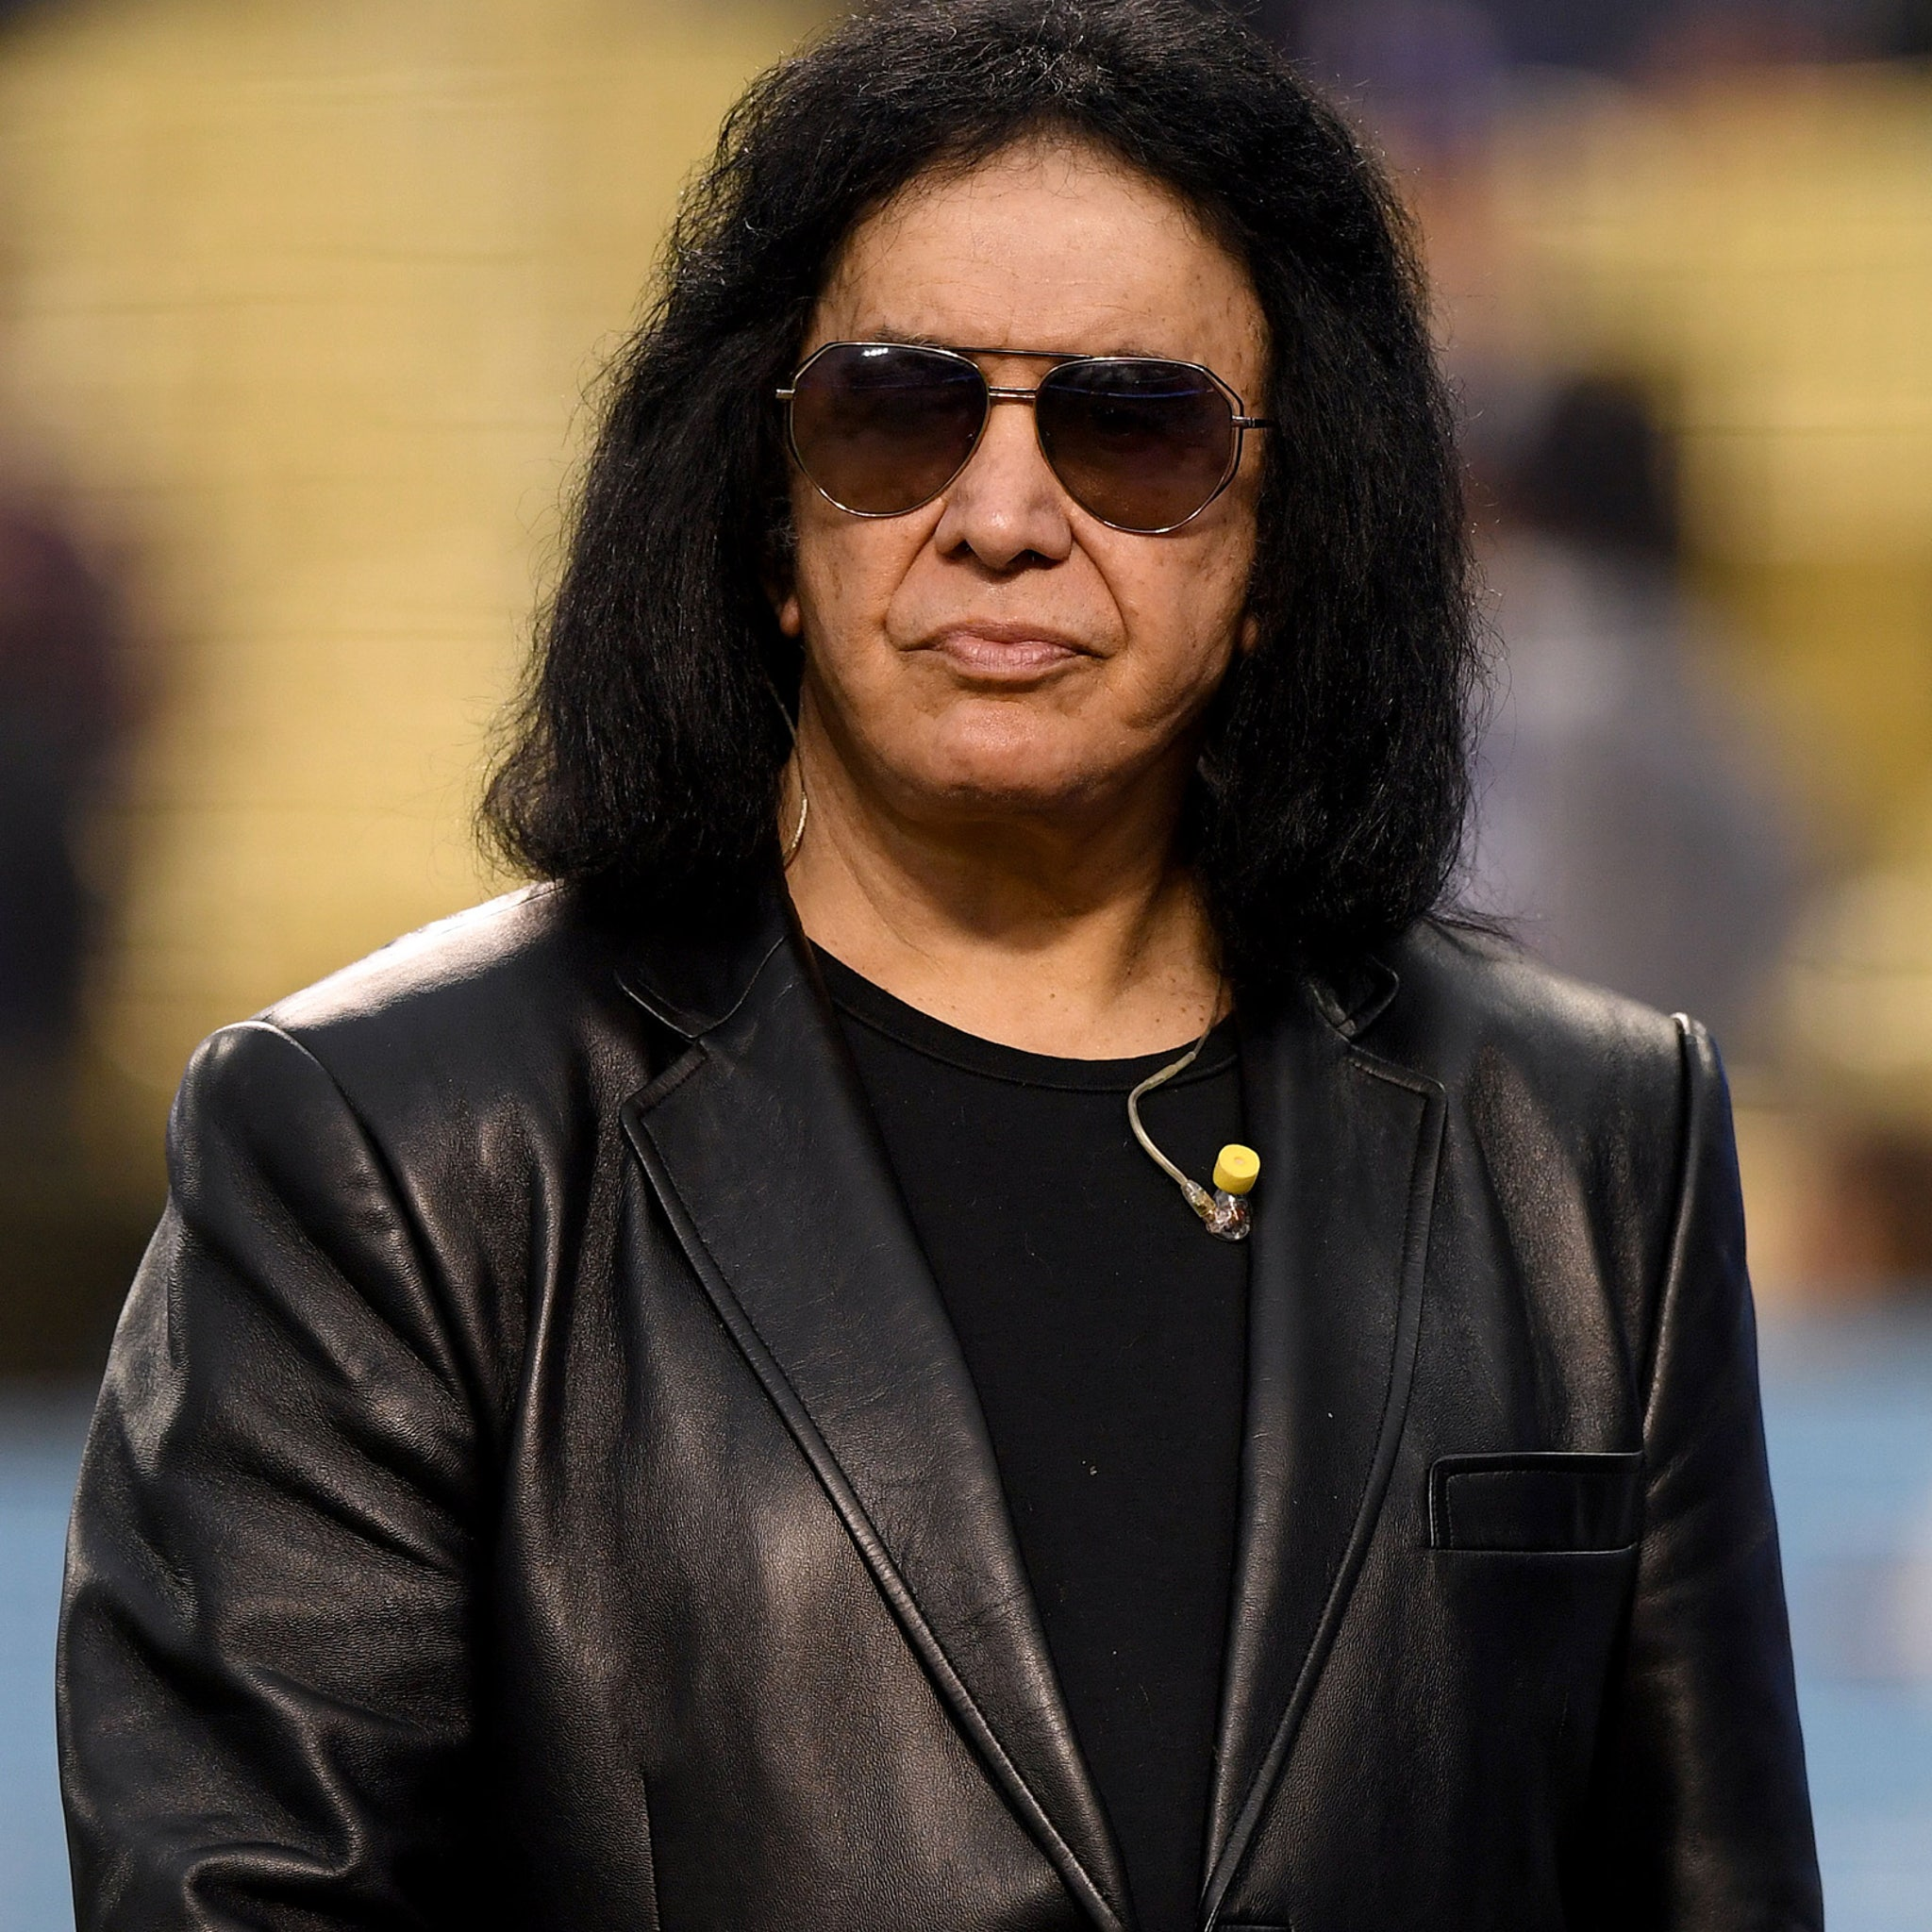 Gene Simmons Shocks Twitter After He Reveals He Puts Ice Cubes in ...